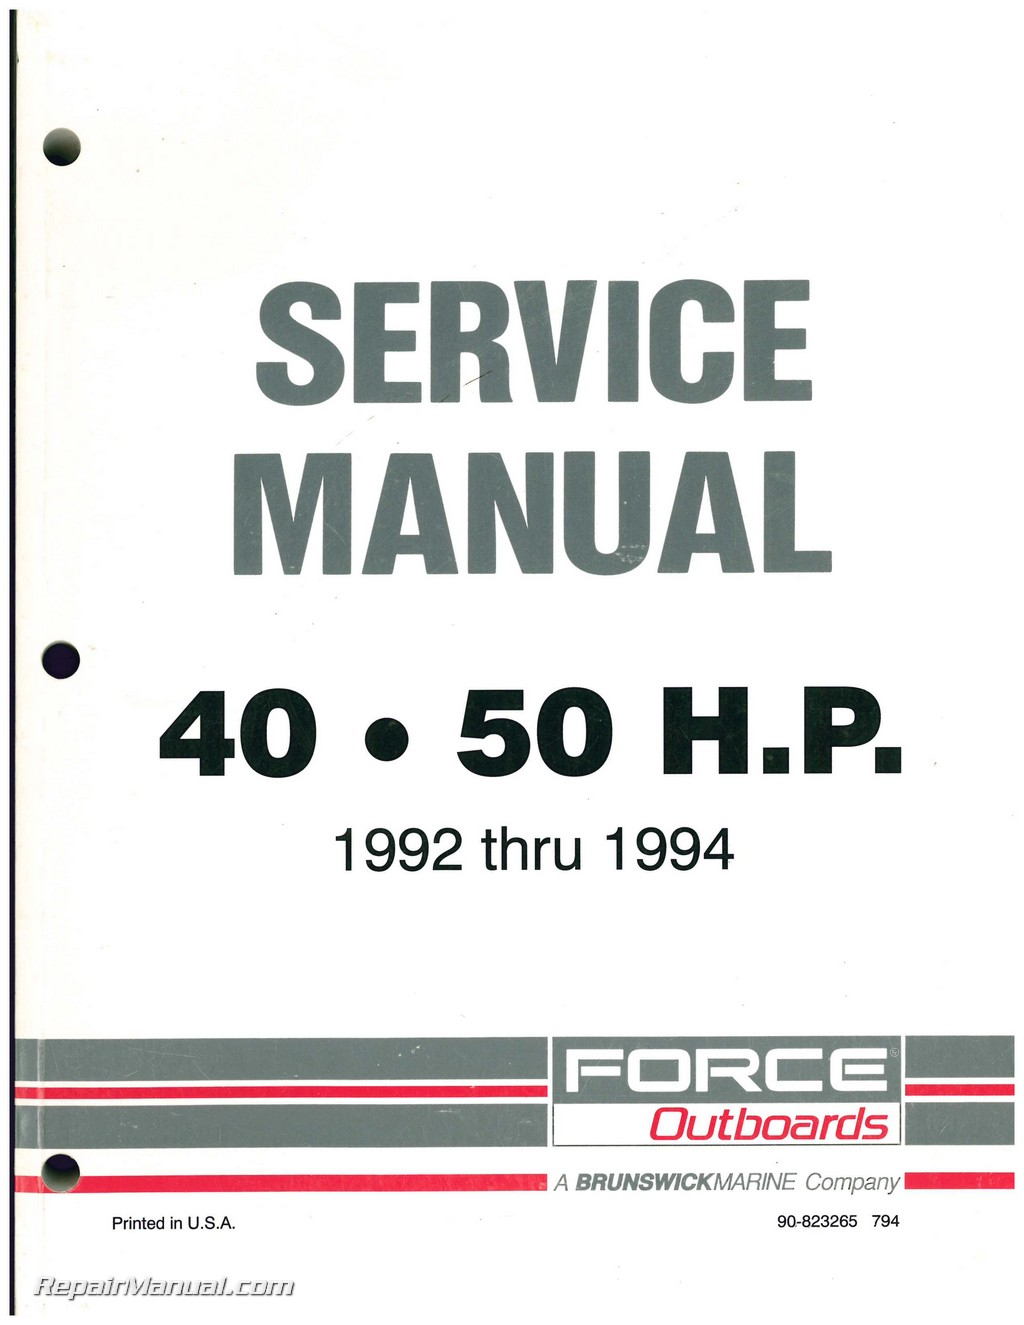 Force 40 Hp Outboard Schematic Electrical Wiring Diagram Ignition 1992 1993 1994 Engine 40hp 50hp Service Manual Rh Repairmanual Com 1996